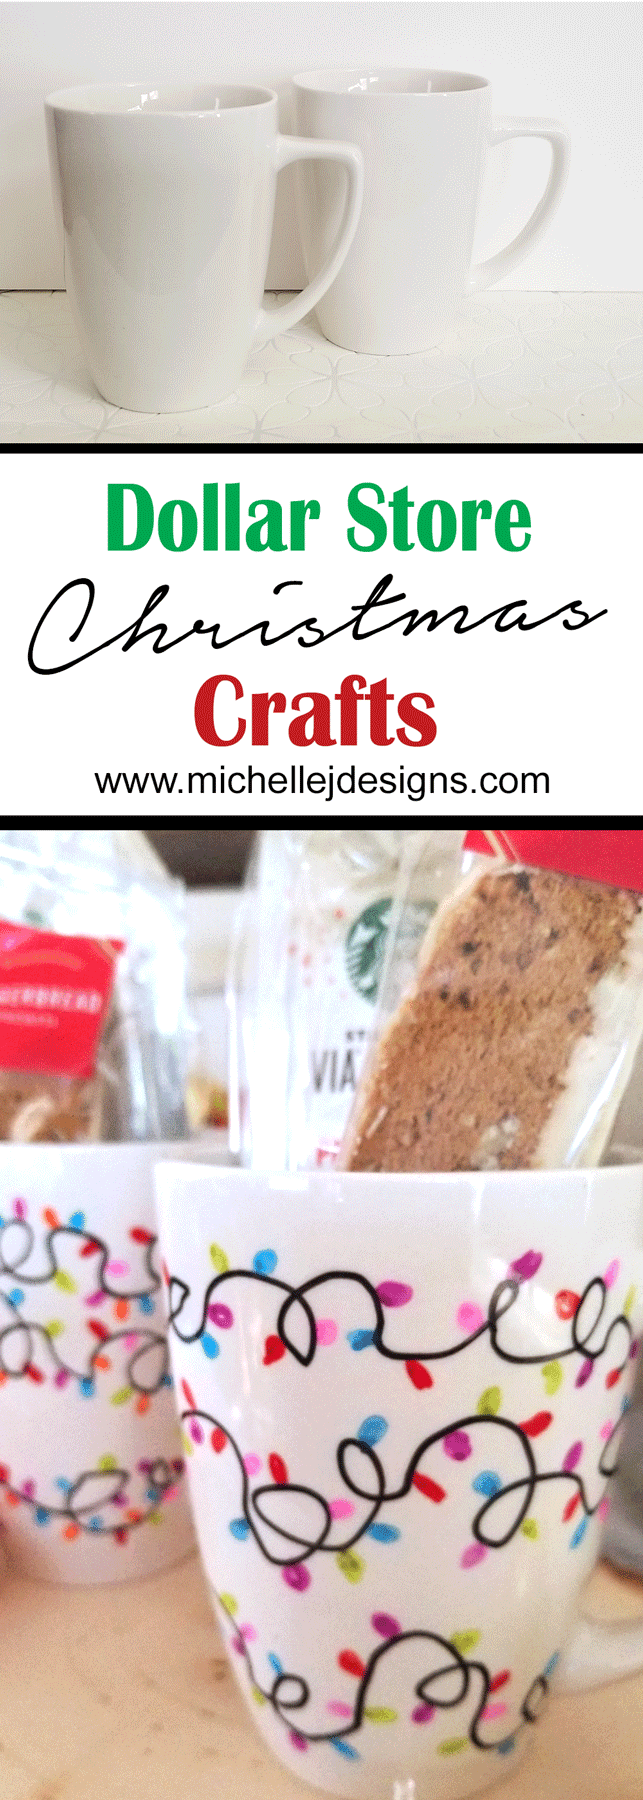 These dollar store Christmas craft is perfect for friends, co-workers, teachers and more. It is fun, festive and budget friendly - www.michellejdesigns.com